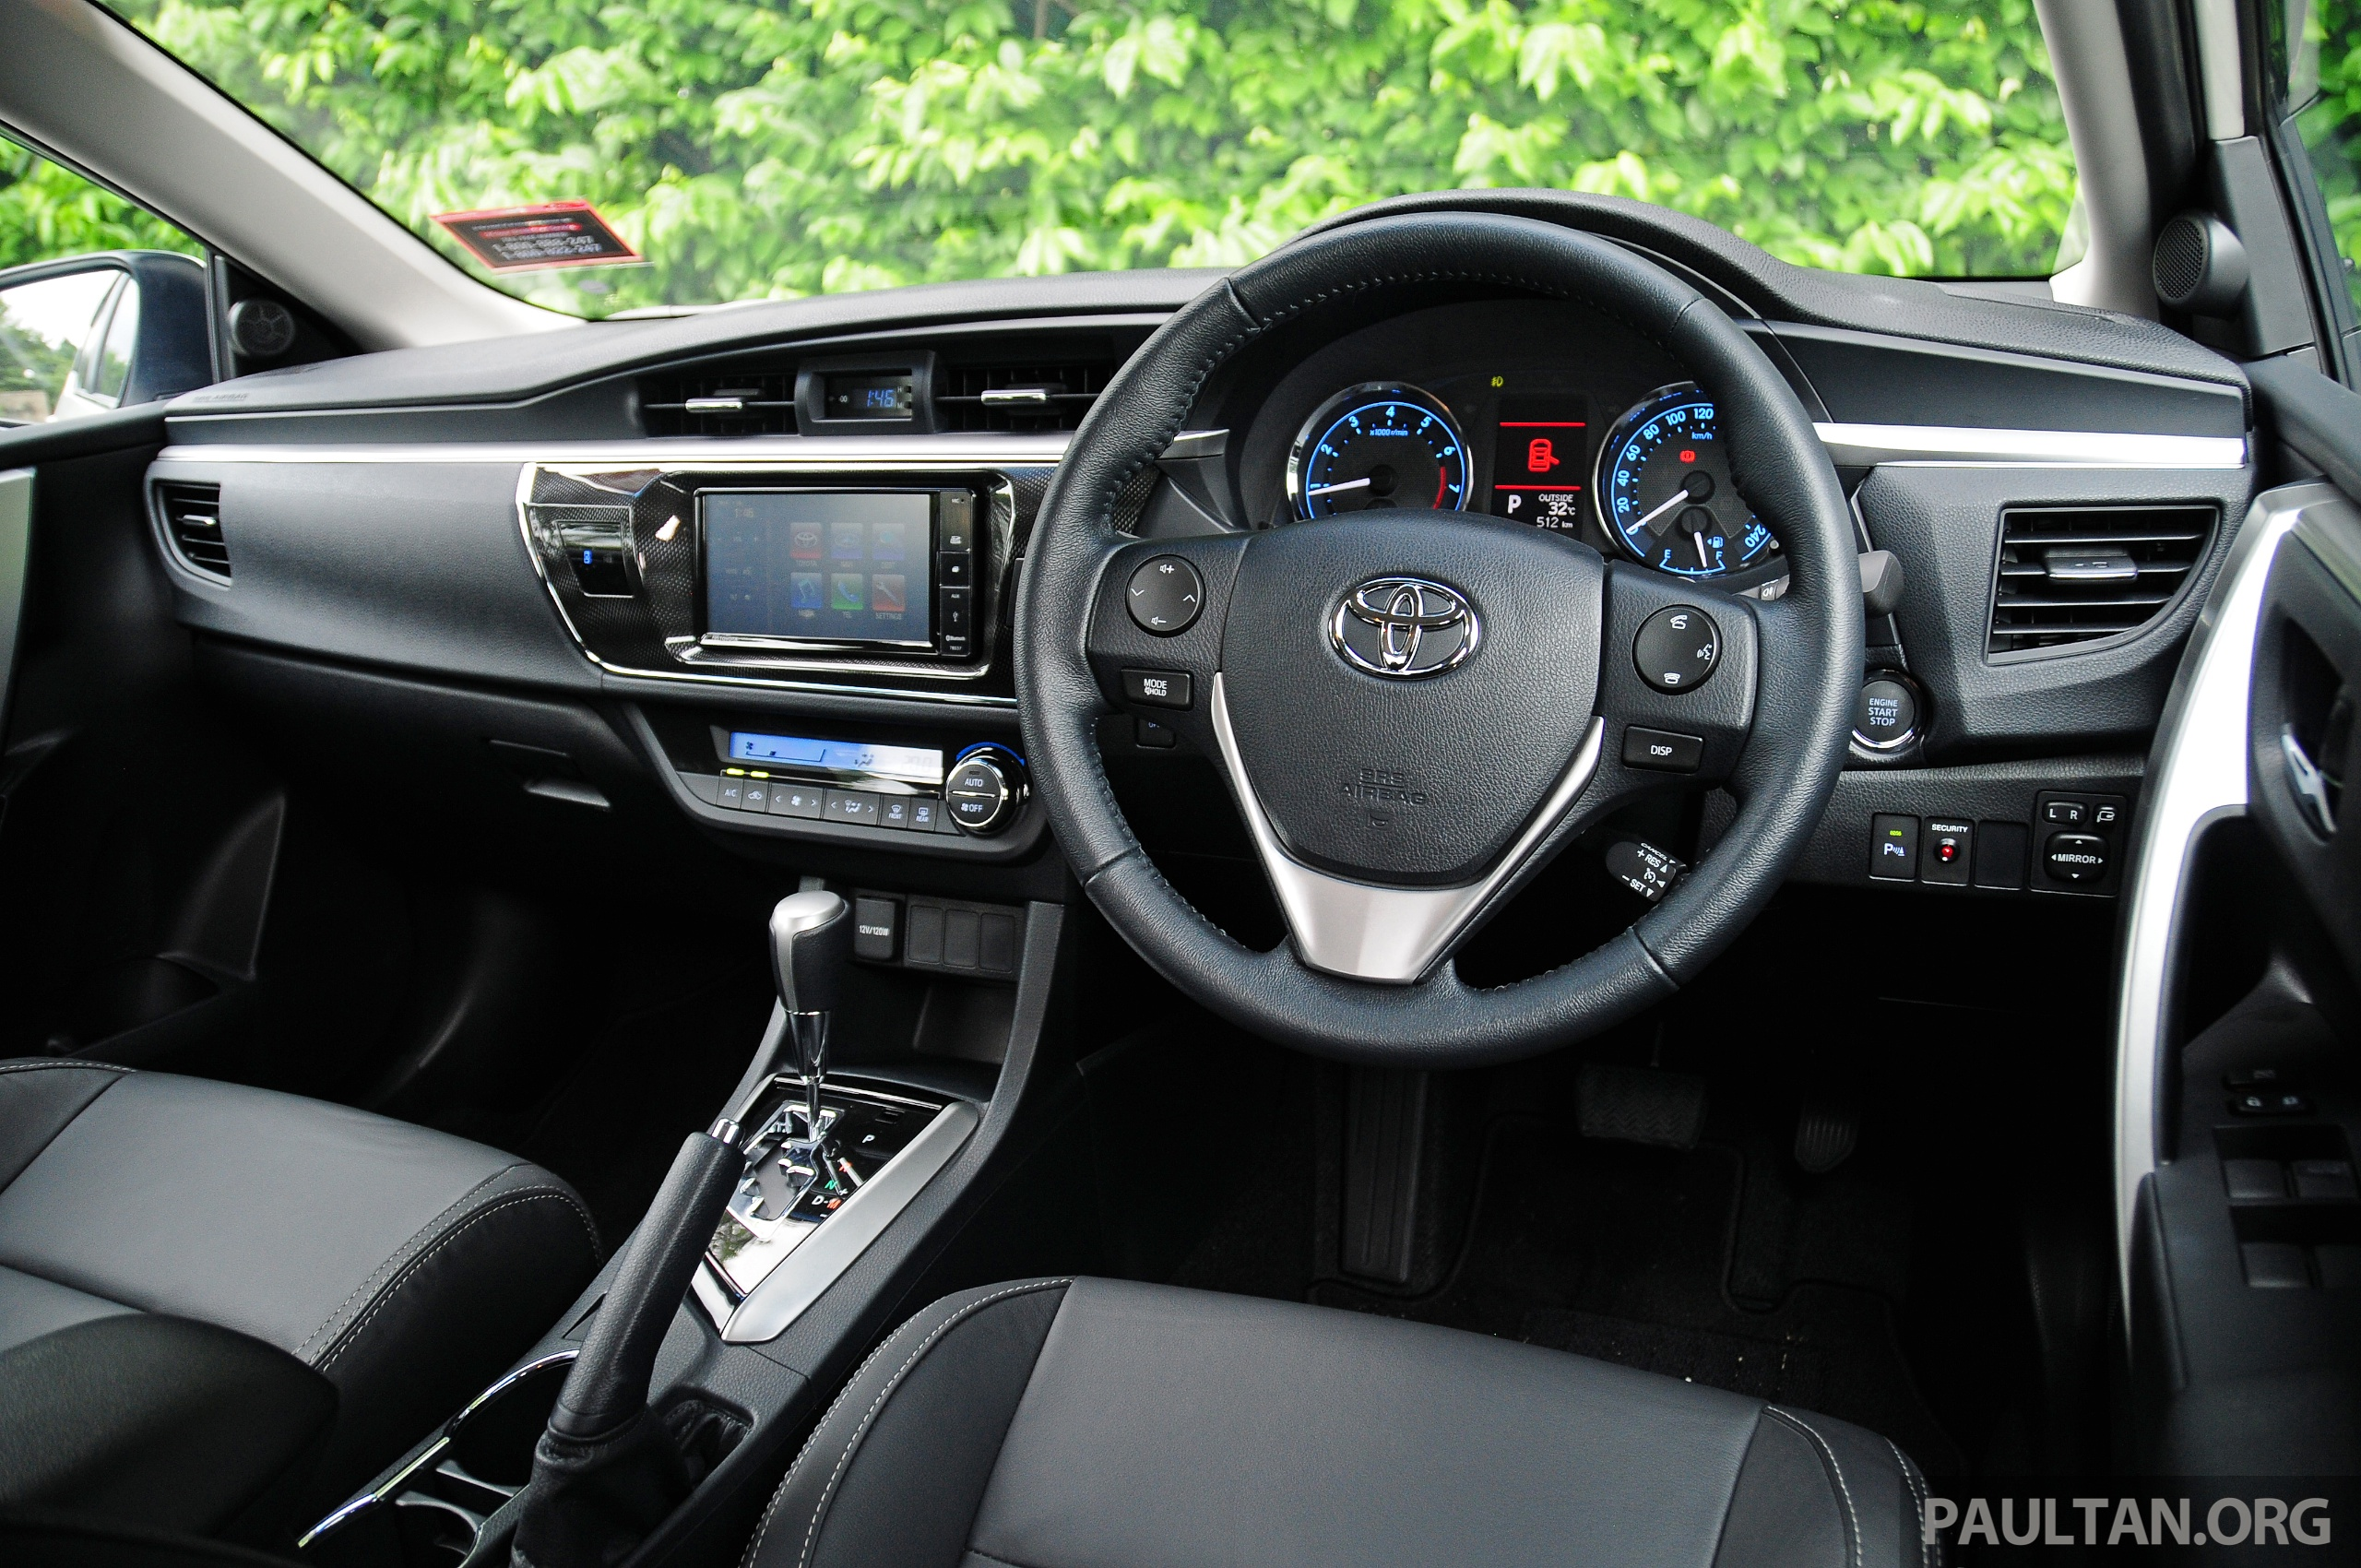 Driven 2014 toyota corolla altis 2 0v on local roads image 222512